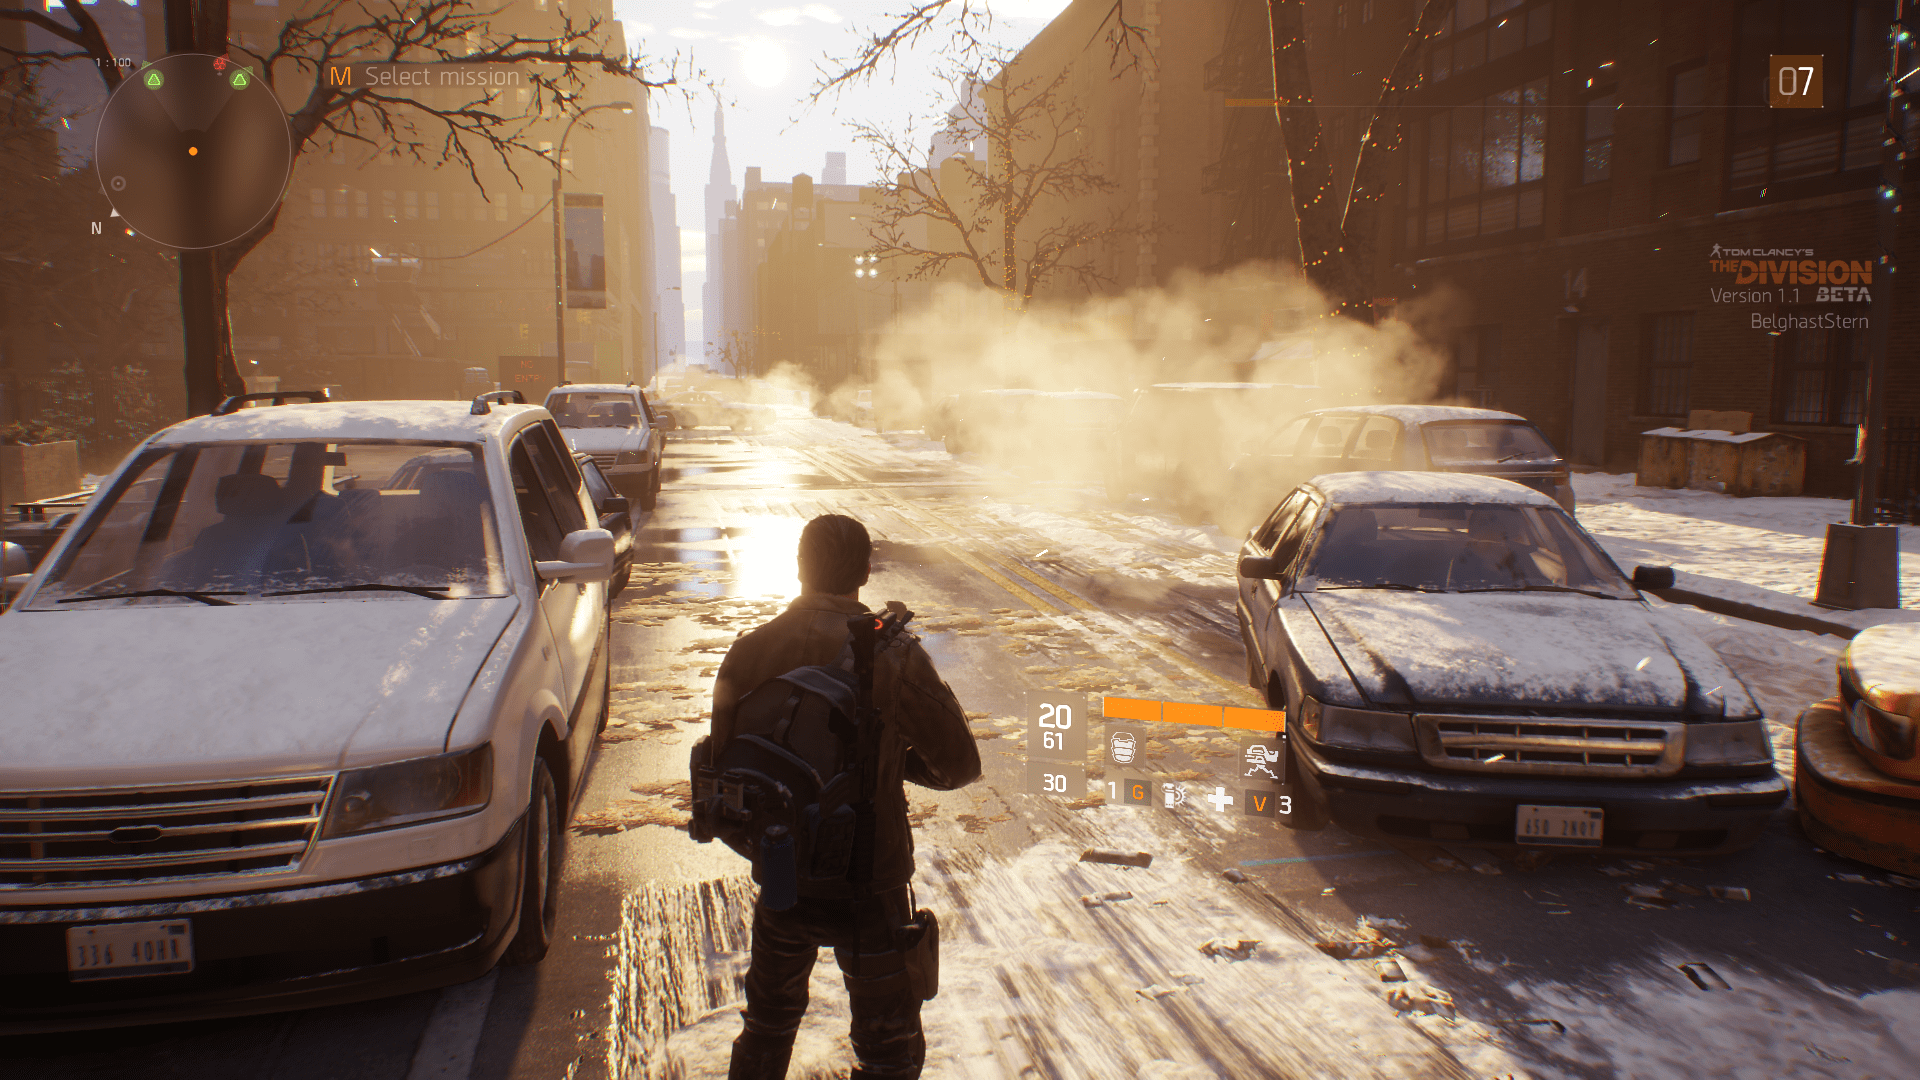 TheDivision 2016-02-21 10-00-02-54